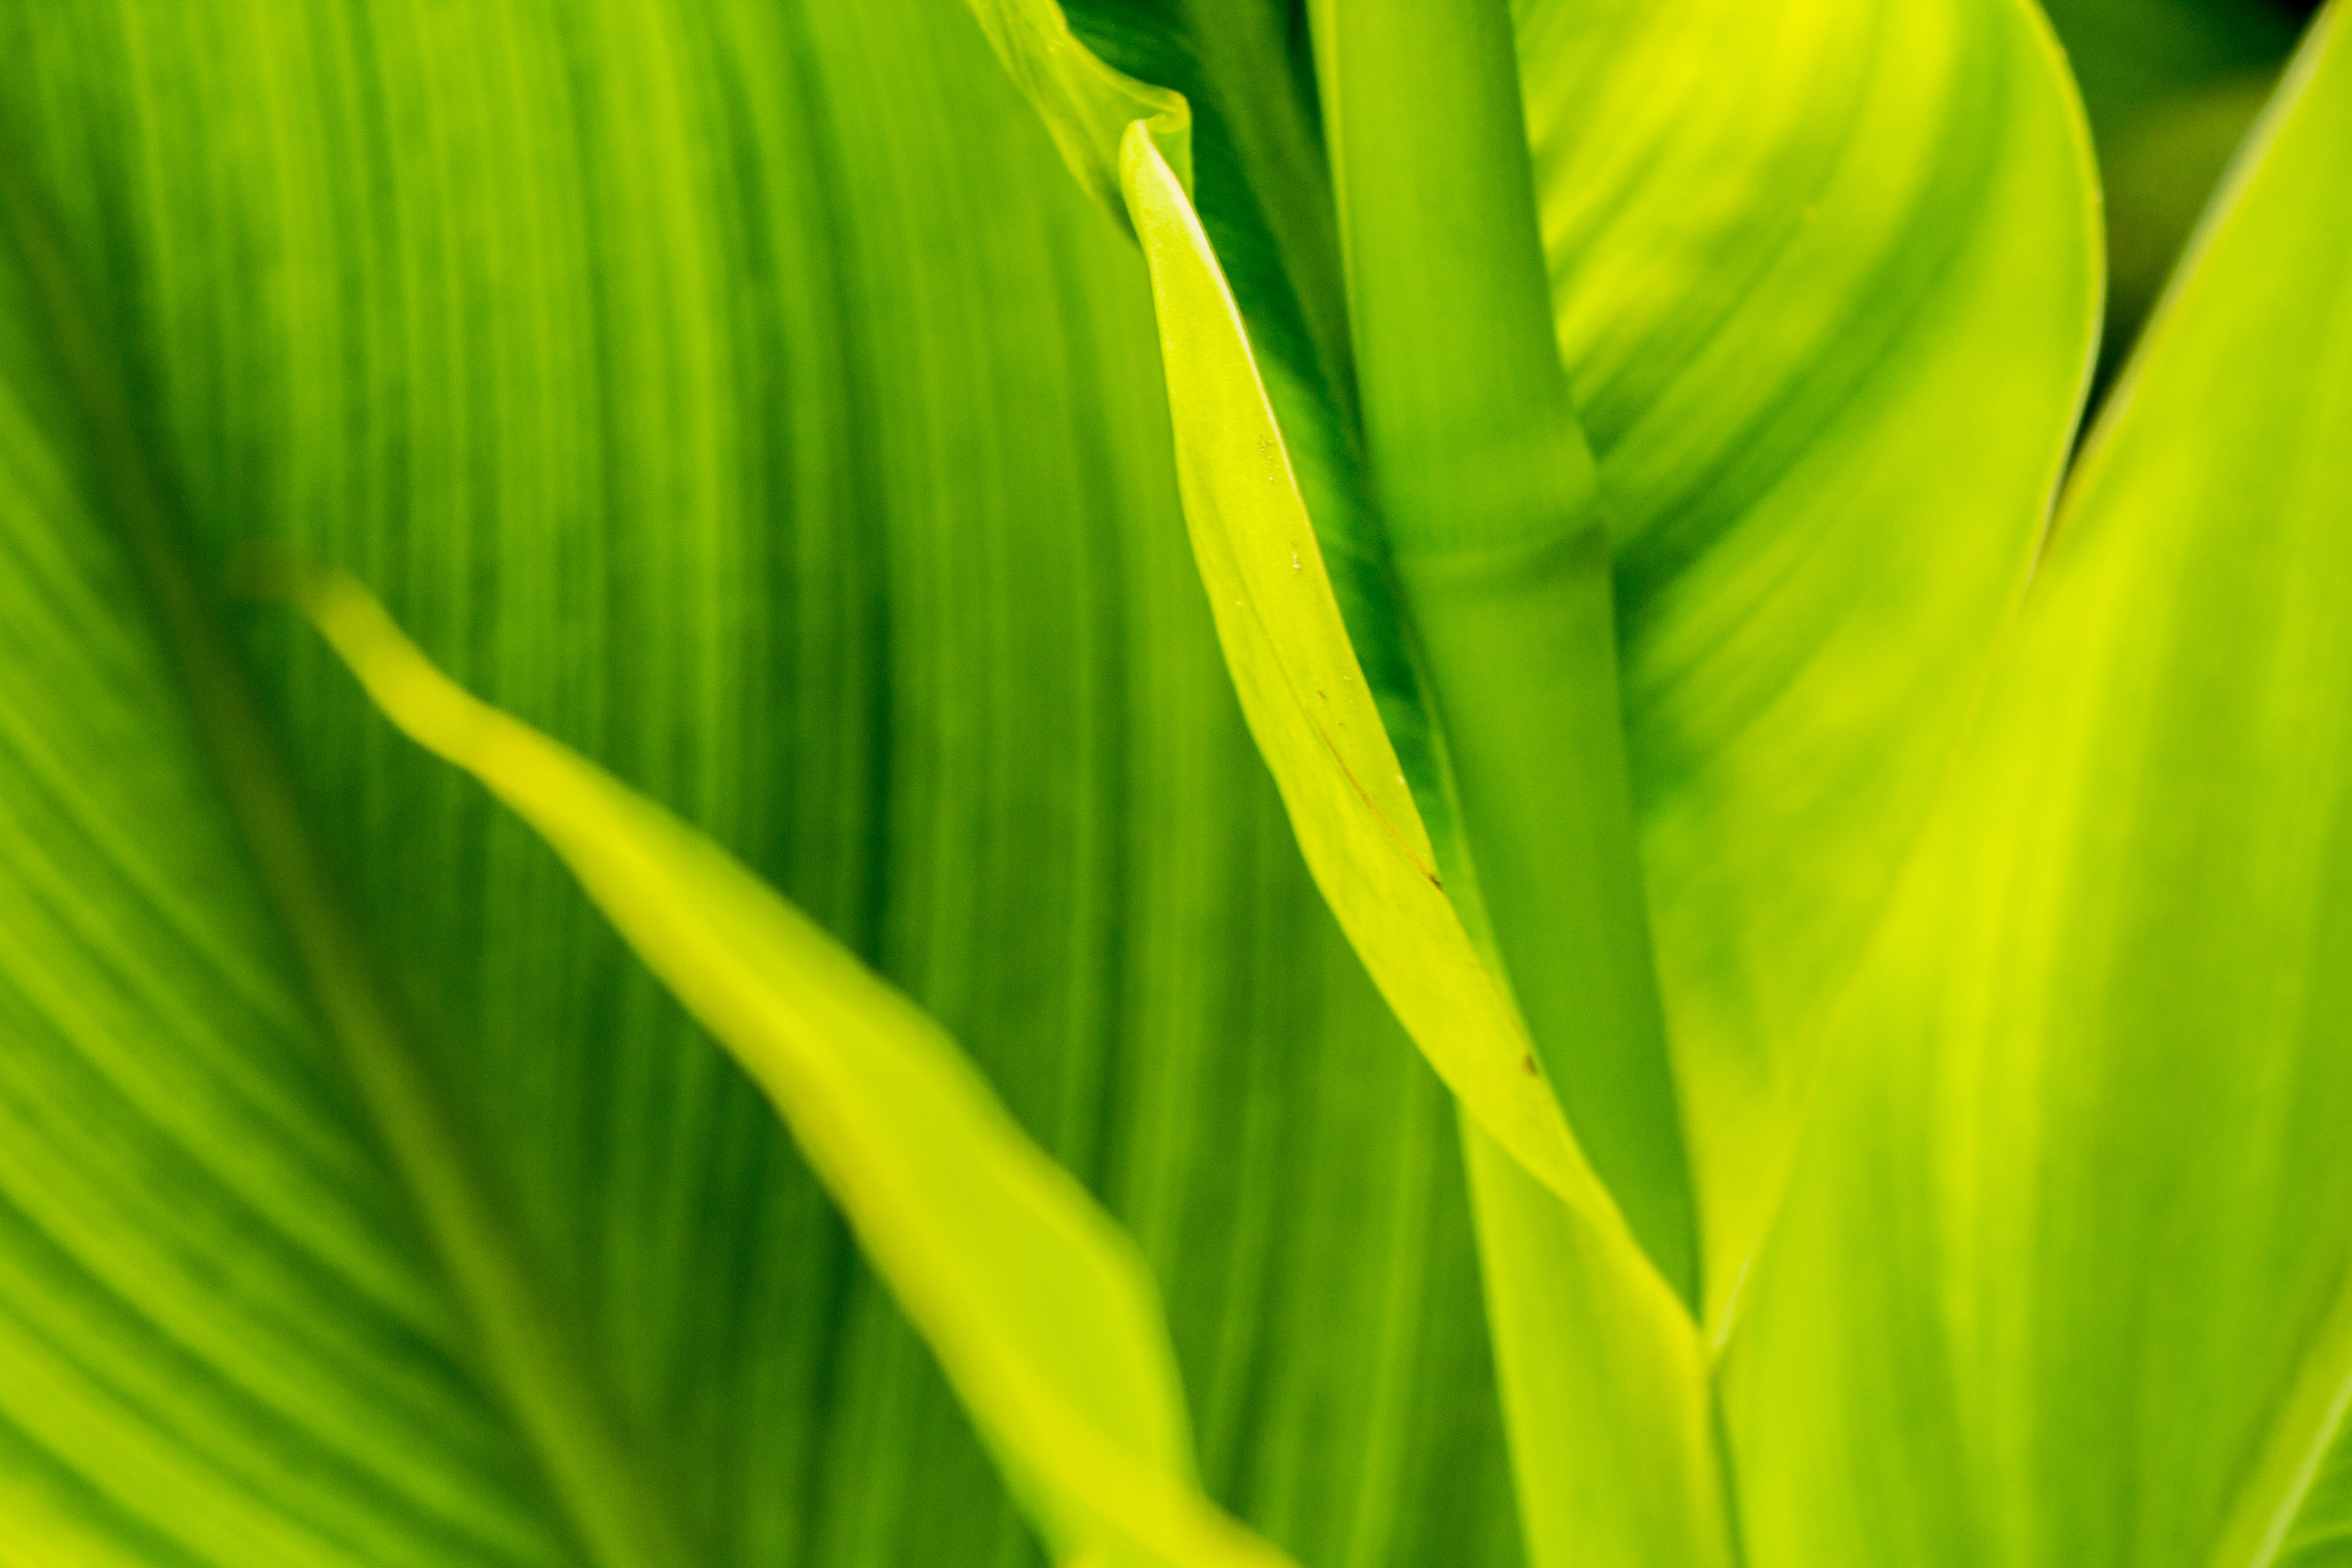 green and yellow wide-leafed plant at daytime